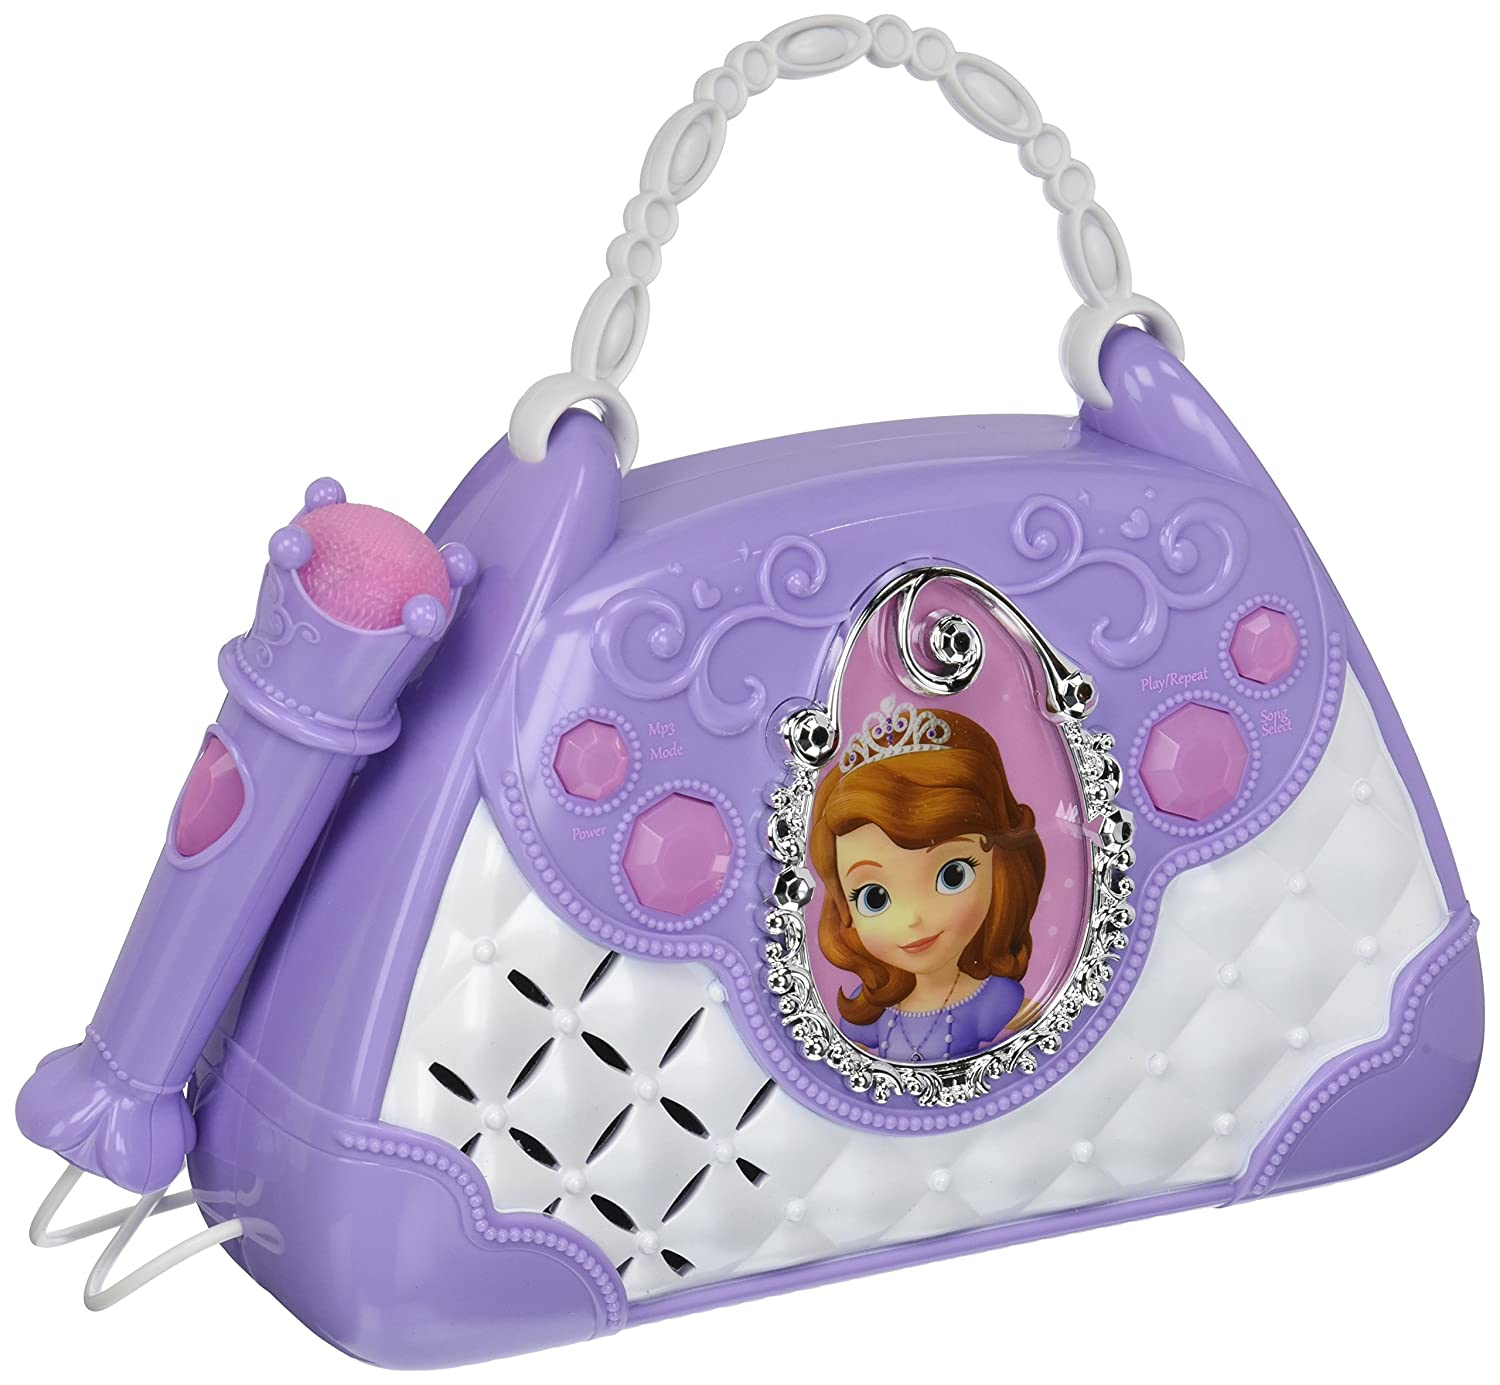 Sofia The First Bedroom Accessories Amazoncom Kiddesigns Sofia The First Time To Shine Sing Along